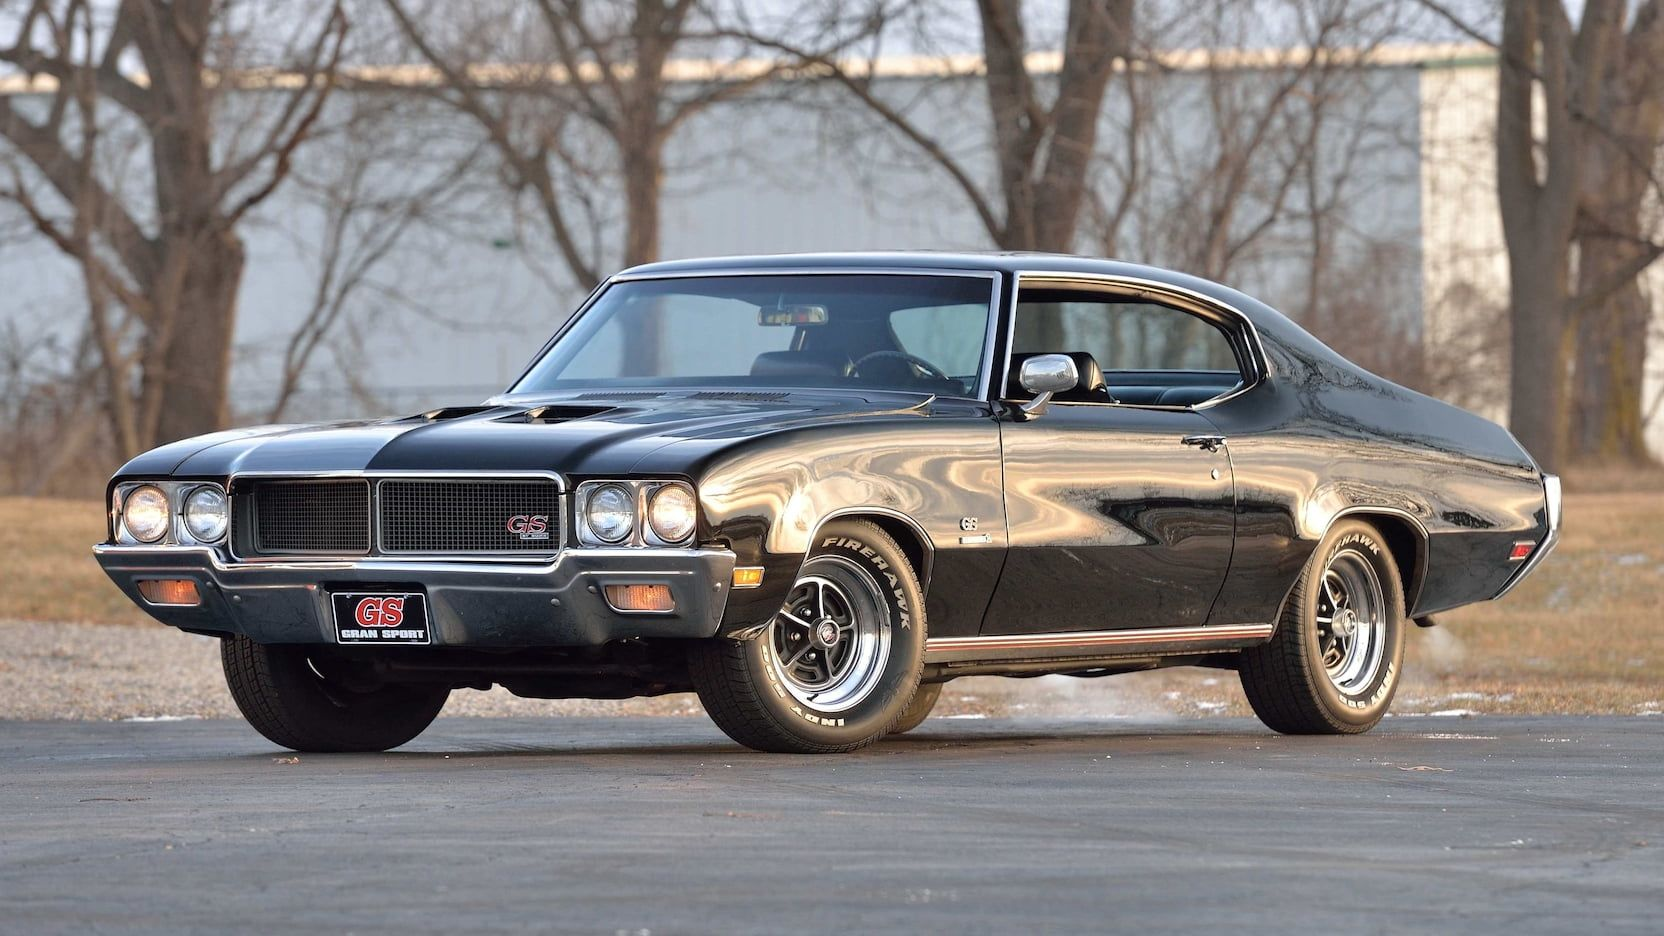 1970 Buick GS presented as Lot F35 at Indianapolis, IN